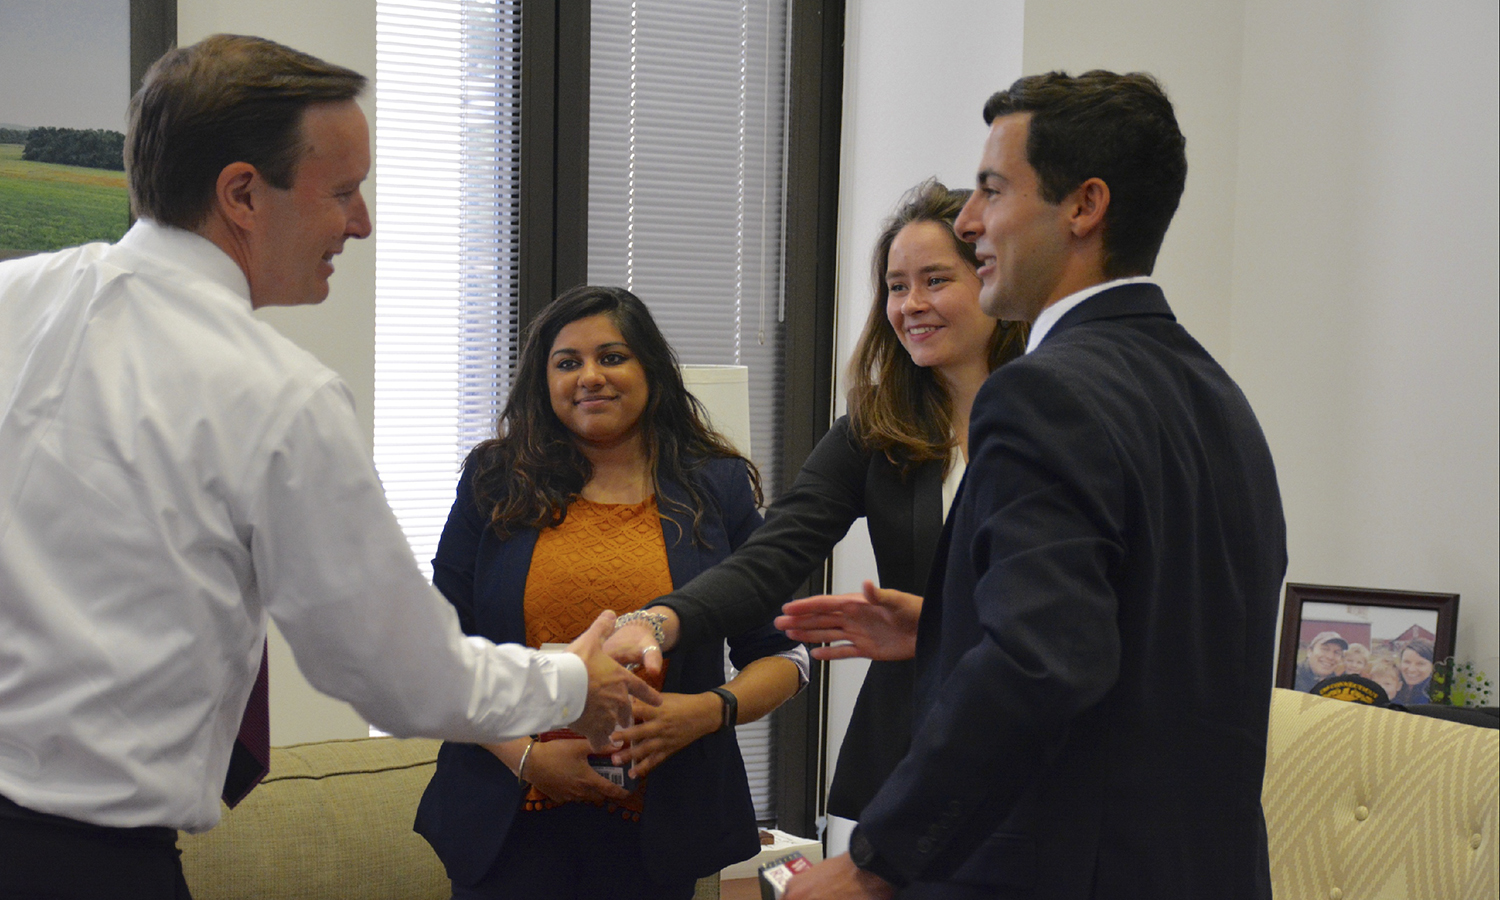 Abigal Abrams '19  (center) sits in on a press meeting in Washington, D.C. This summer, Abrams is working as a Press Intern for Democratic Senator Chris Murphy from Connecticut.